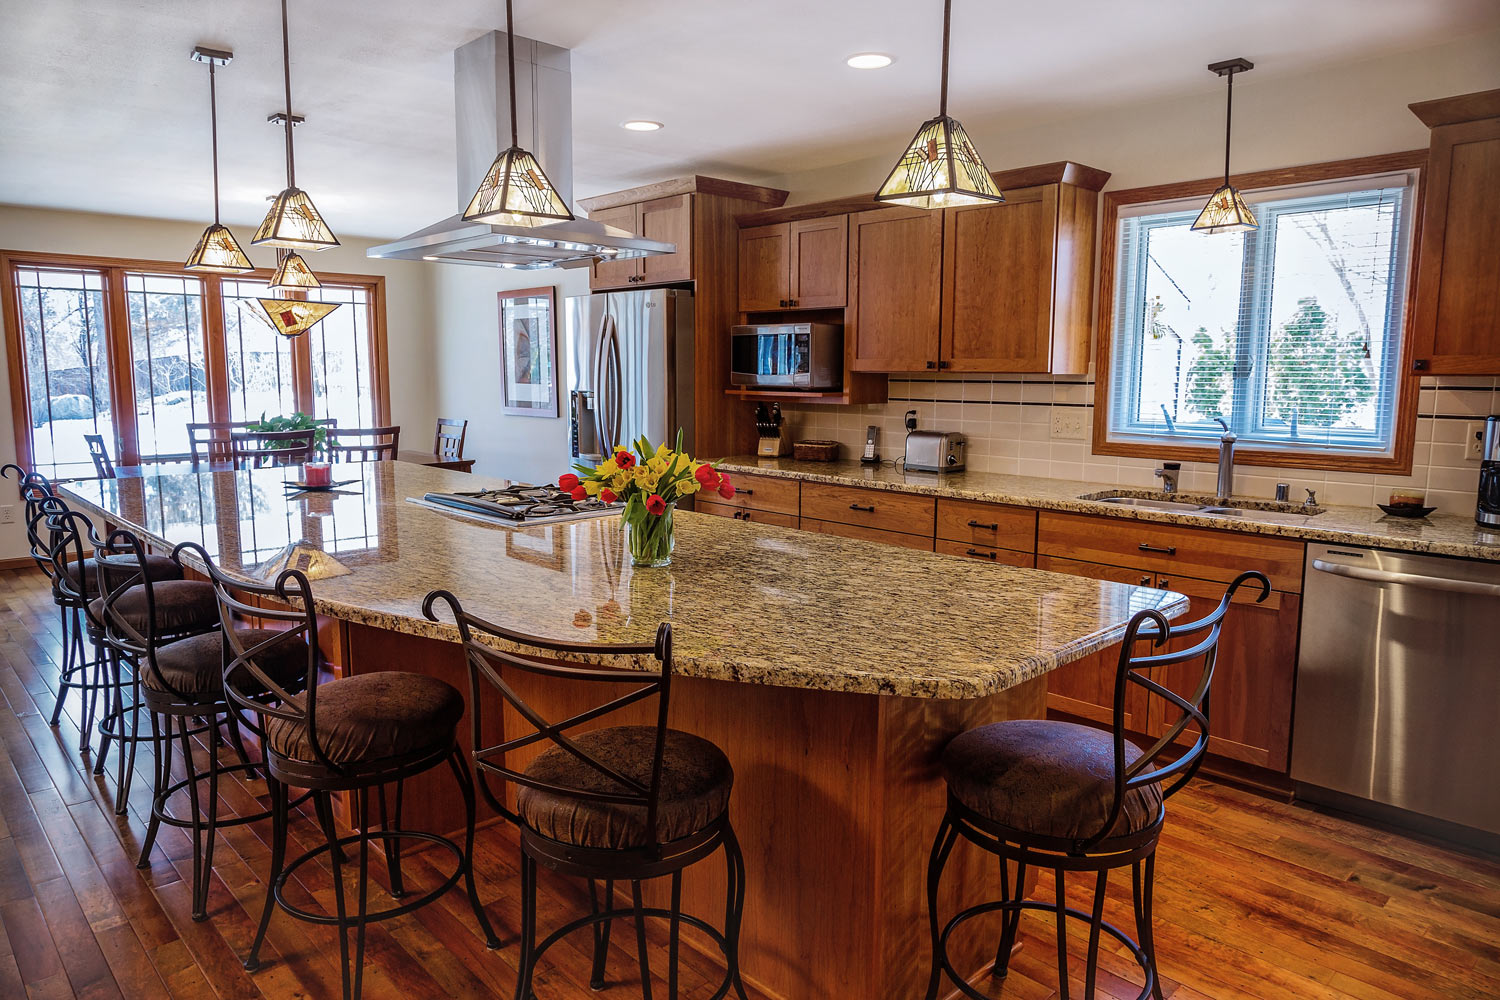 A 1970s Ranch Open Concept Kitchen Remodel In Wisconsin Degnan Design Build Remodel